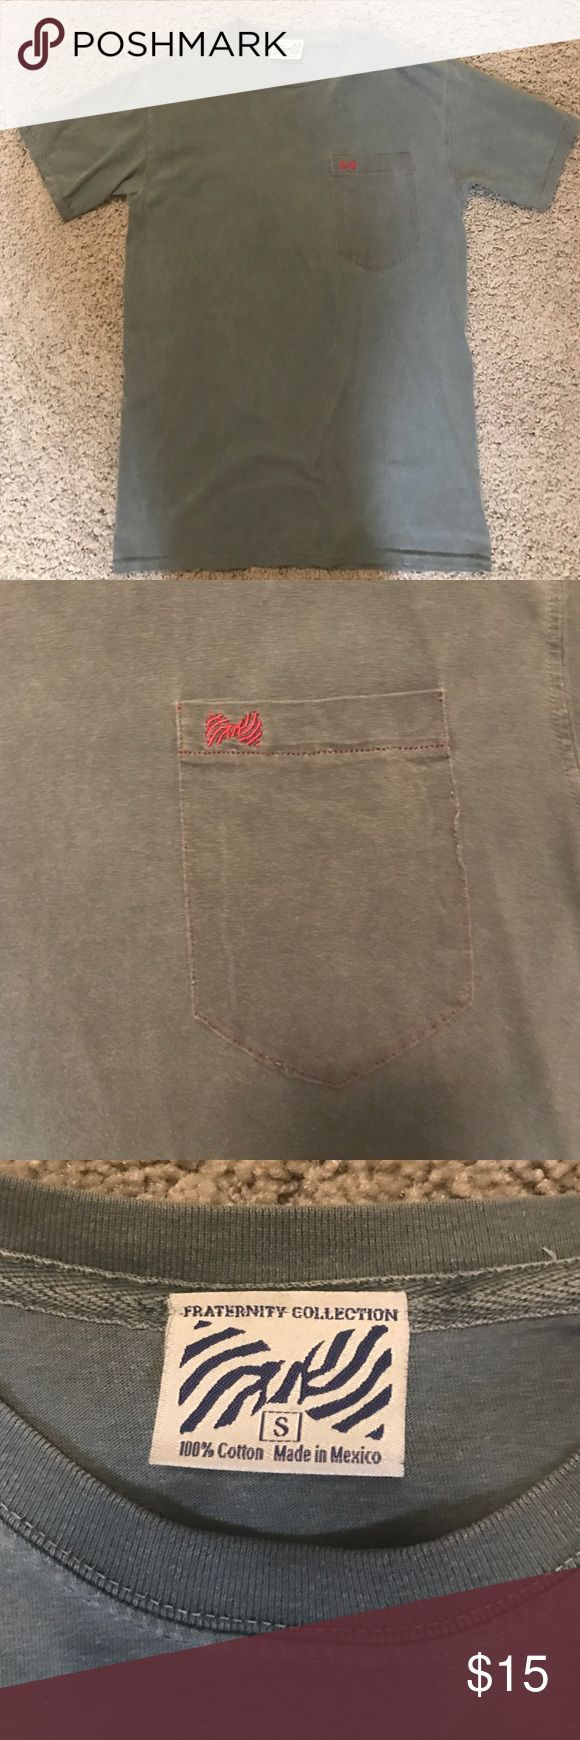 Fraternity Collection Tshirt Super soft and comfy, pocket with red emblem, size small but fits a little loose. Fraternity Collection Tops Tees - Short Sleeve